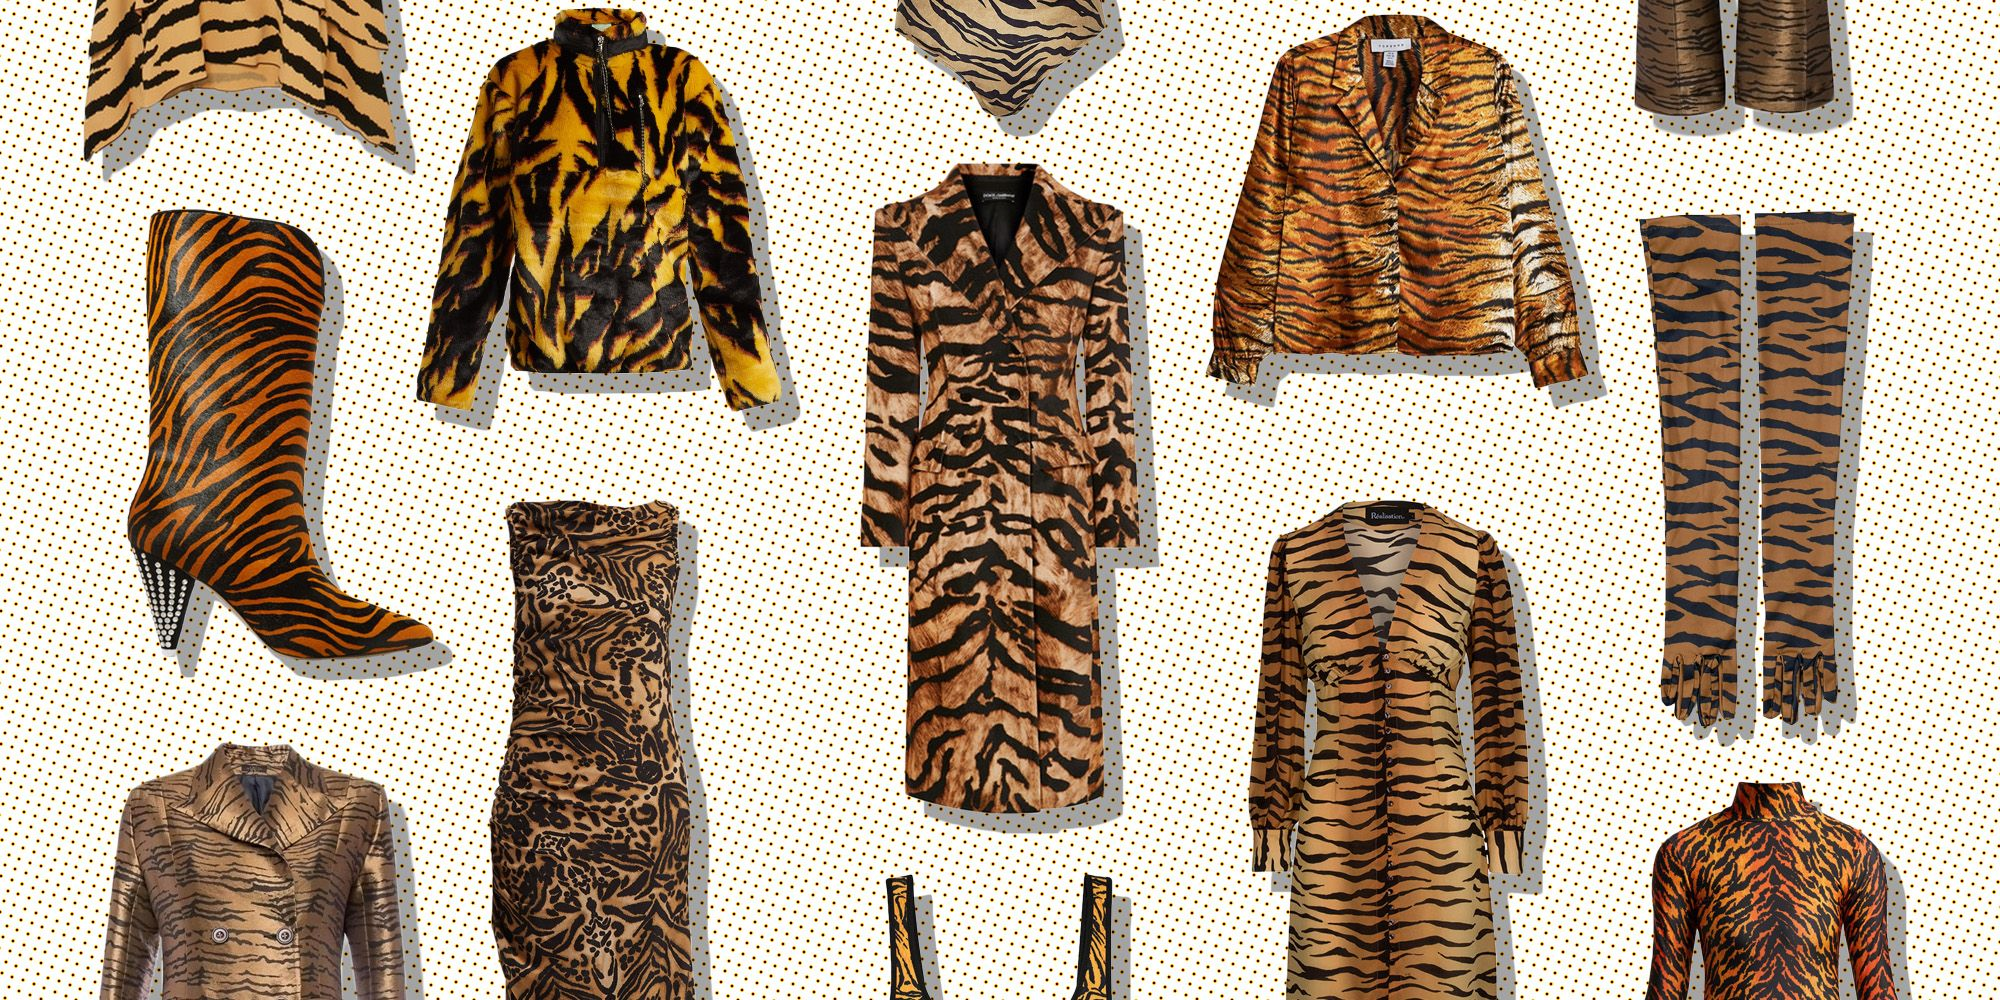 20 Tiger Print Items To Buy Right Now